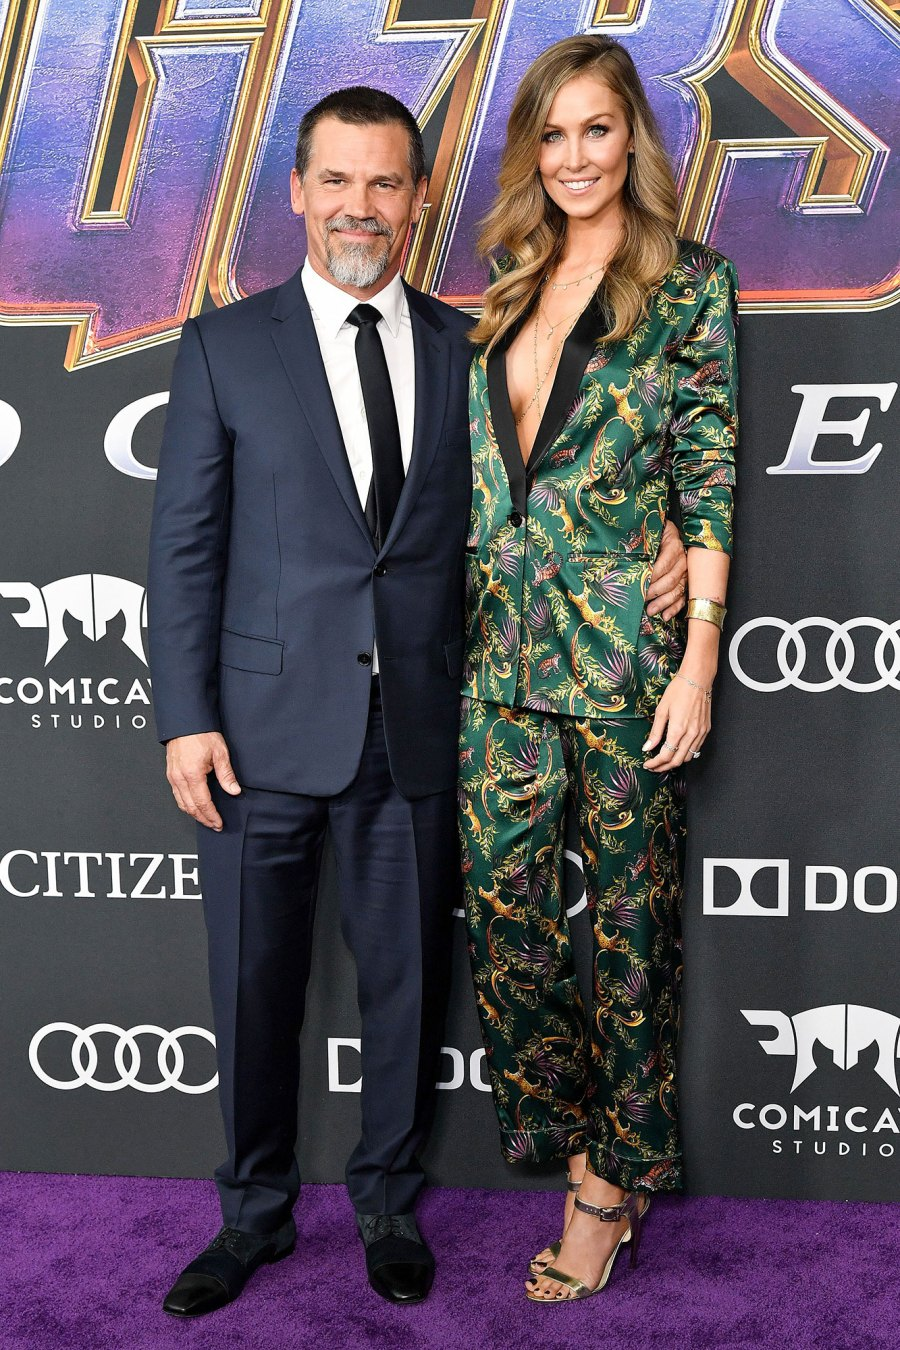 Josh Brolin Wife Kathryn Boyd Is Pregnant With Their 2nd Child Together